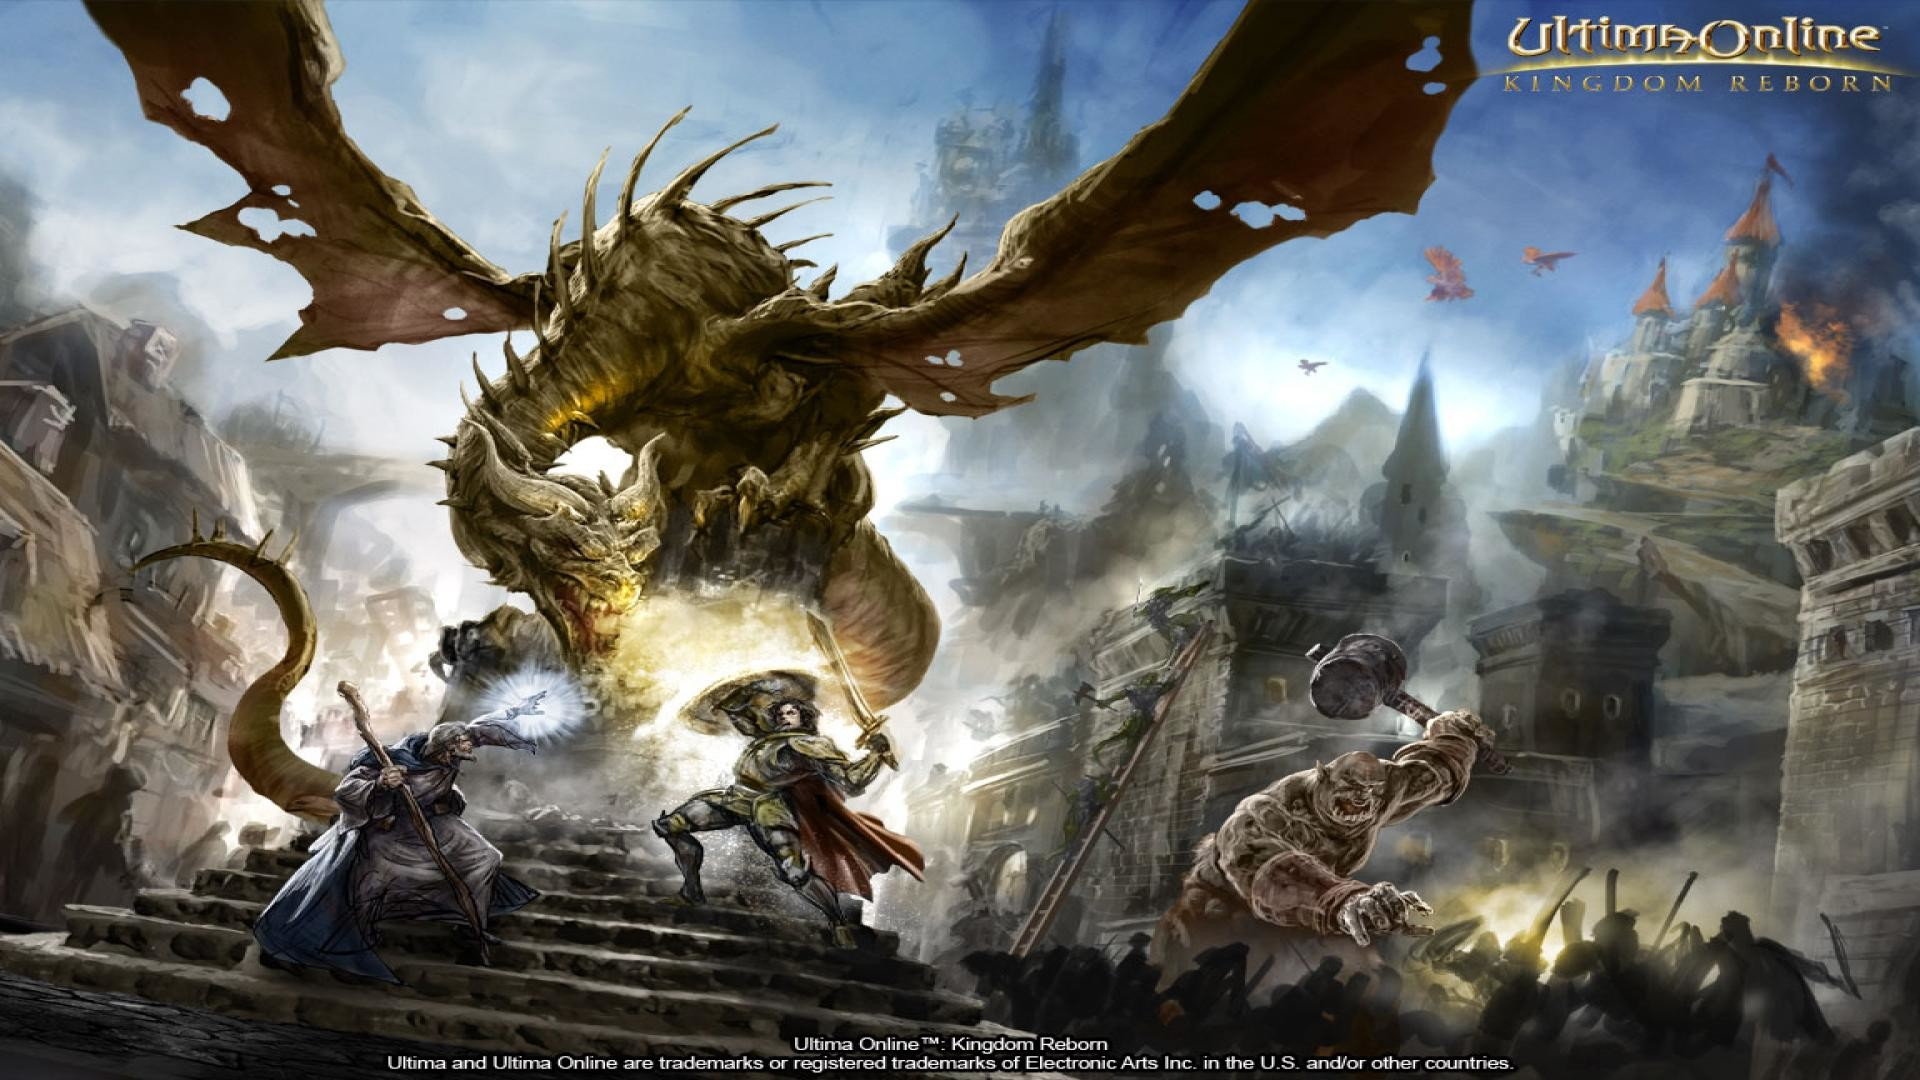 Video Game HD Wallpapers Game Wallpapers Download